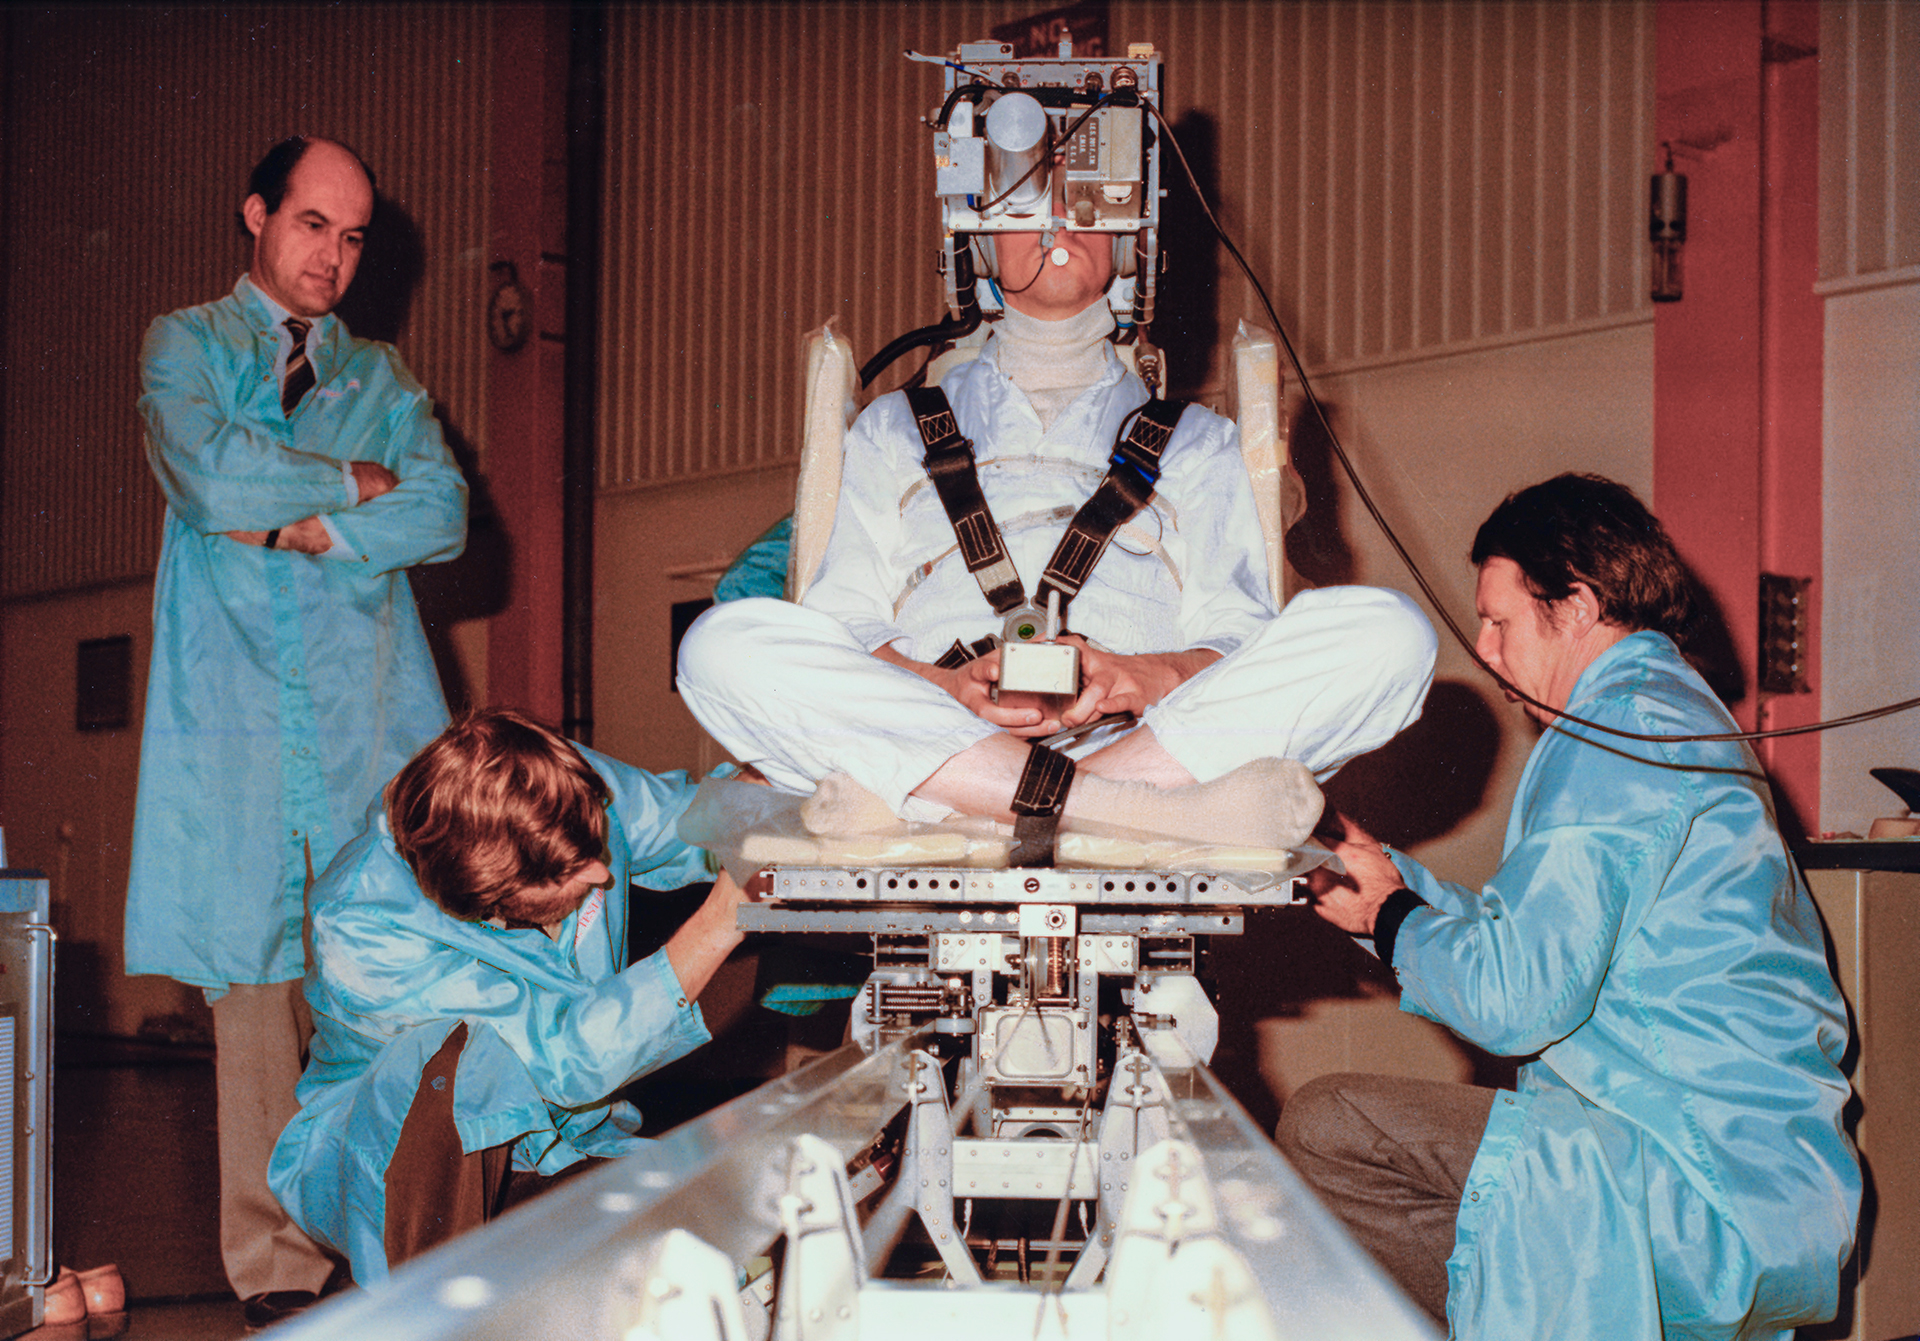 space in images 2013 11 spacelab 1 sled experiment 1981